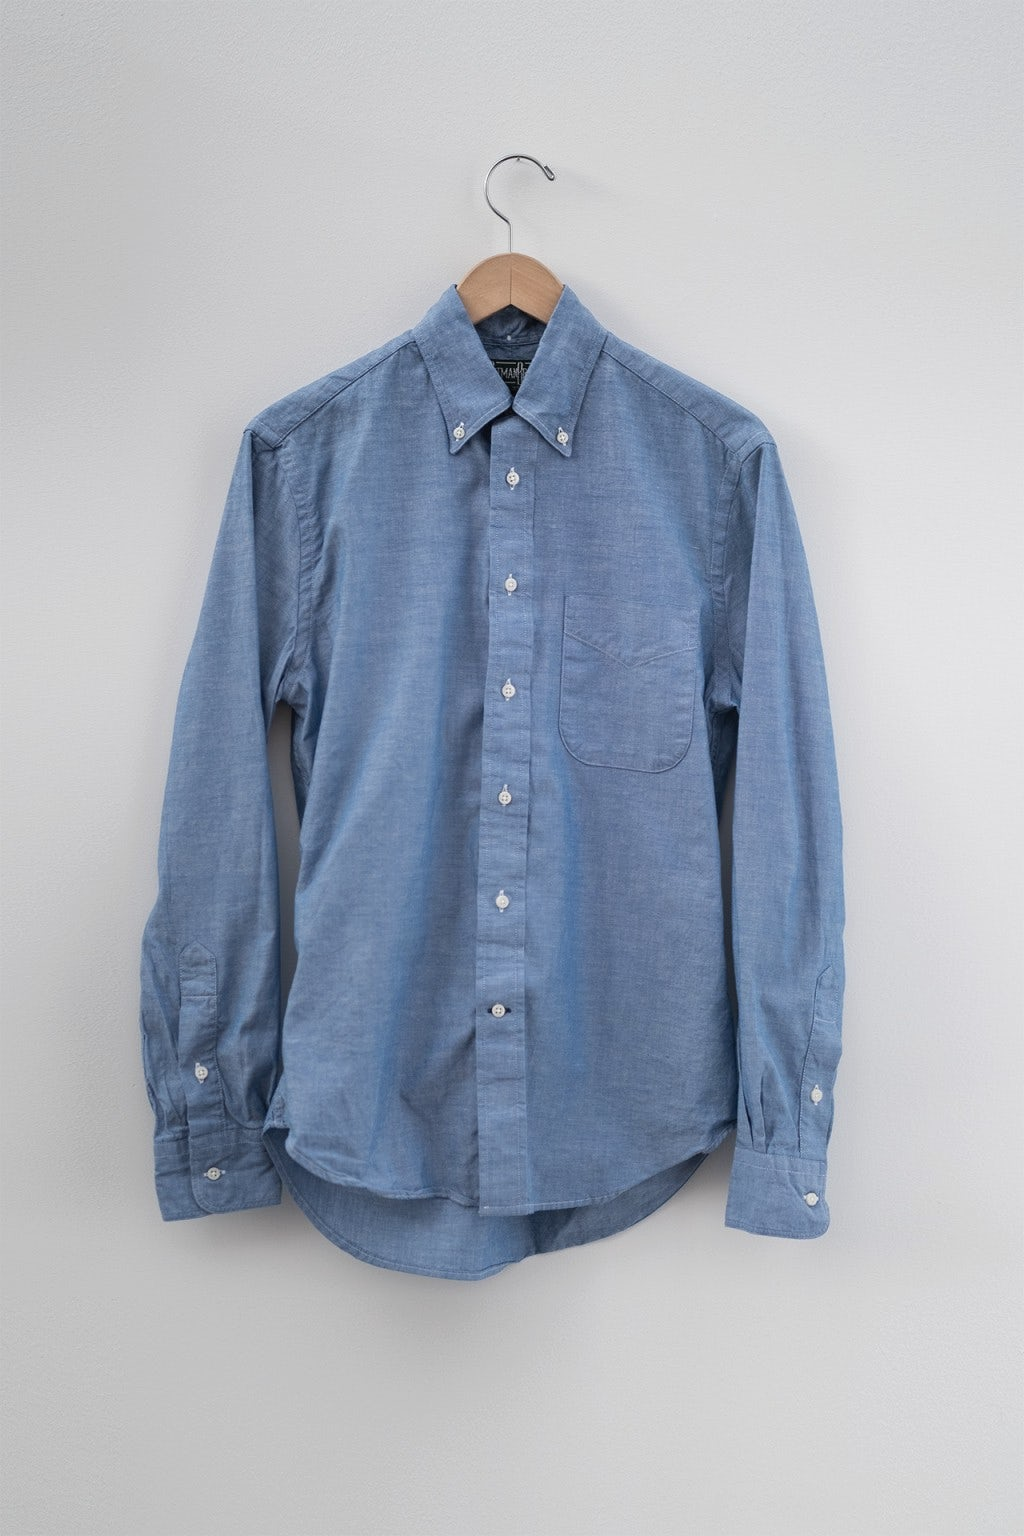 Gitman Bros. Vintage Button Down Blue Chambray